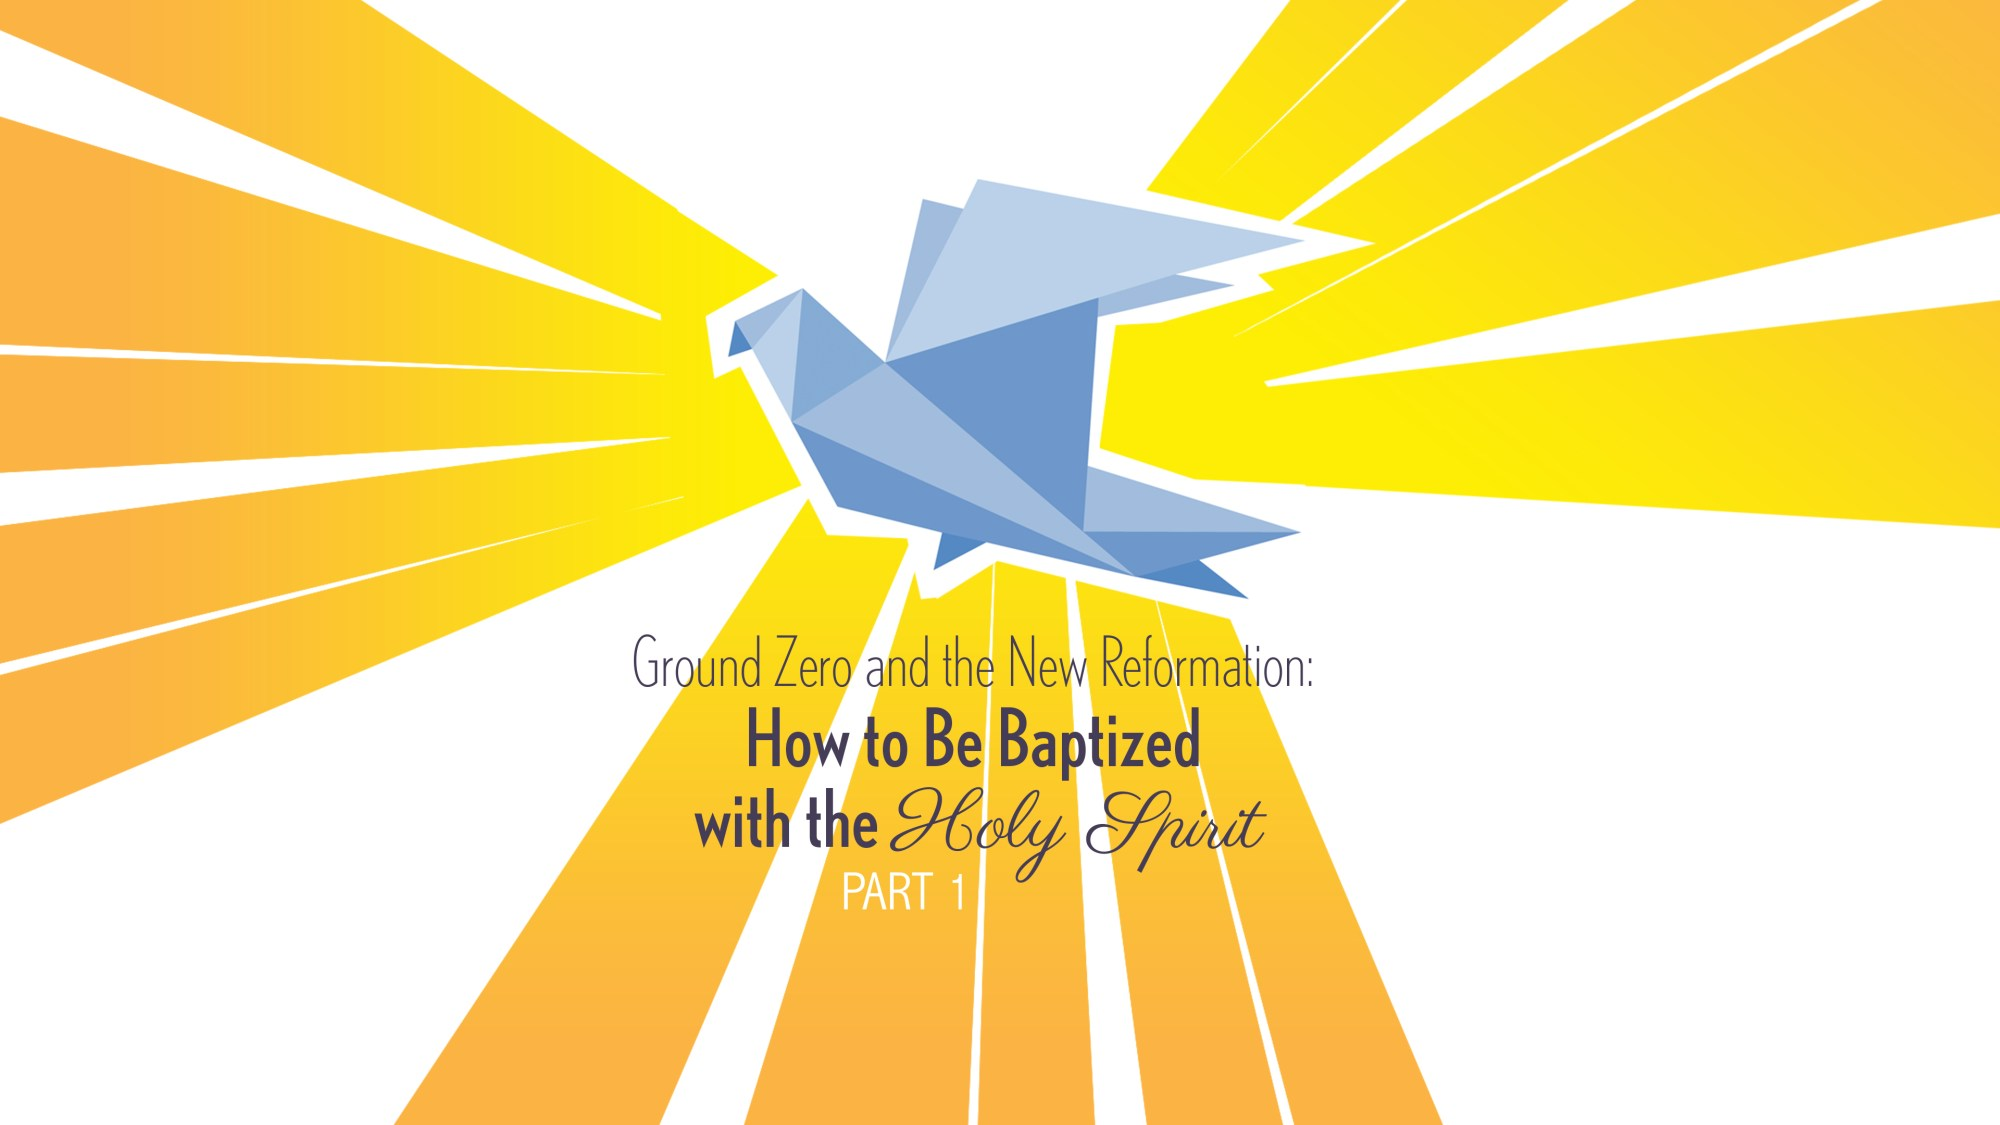 hight resolution of ground zero and the new reformation how to be baptized with